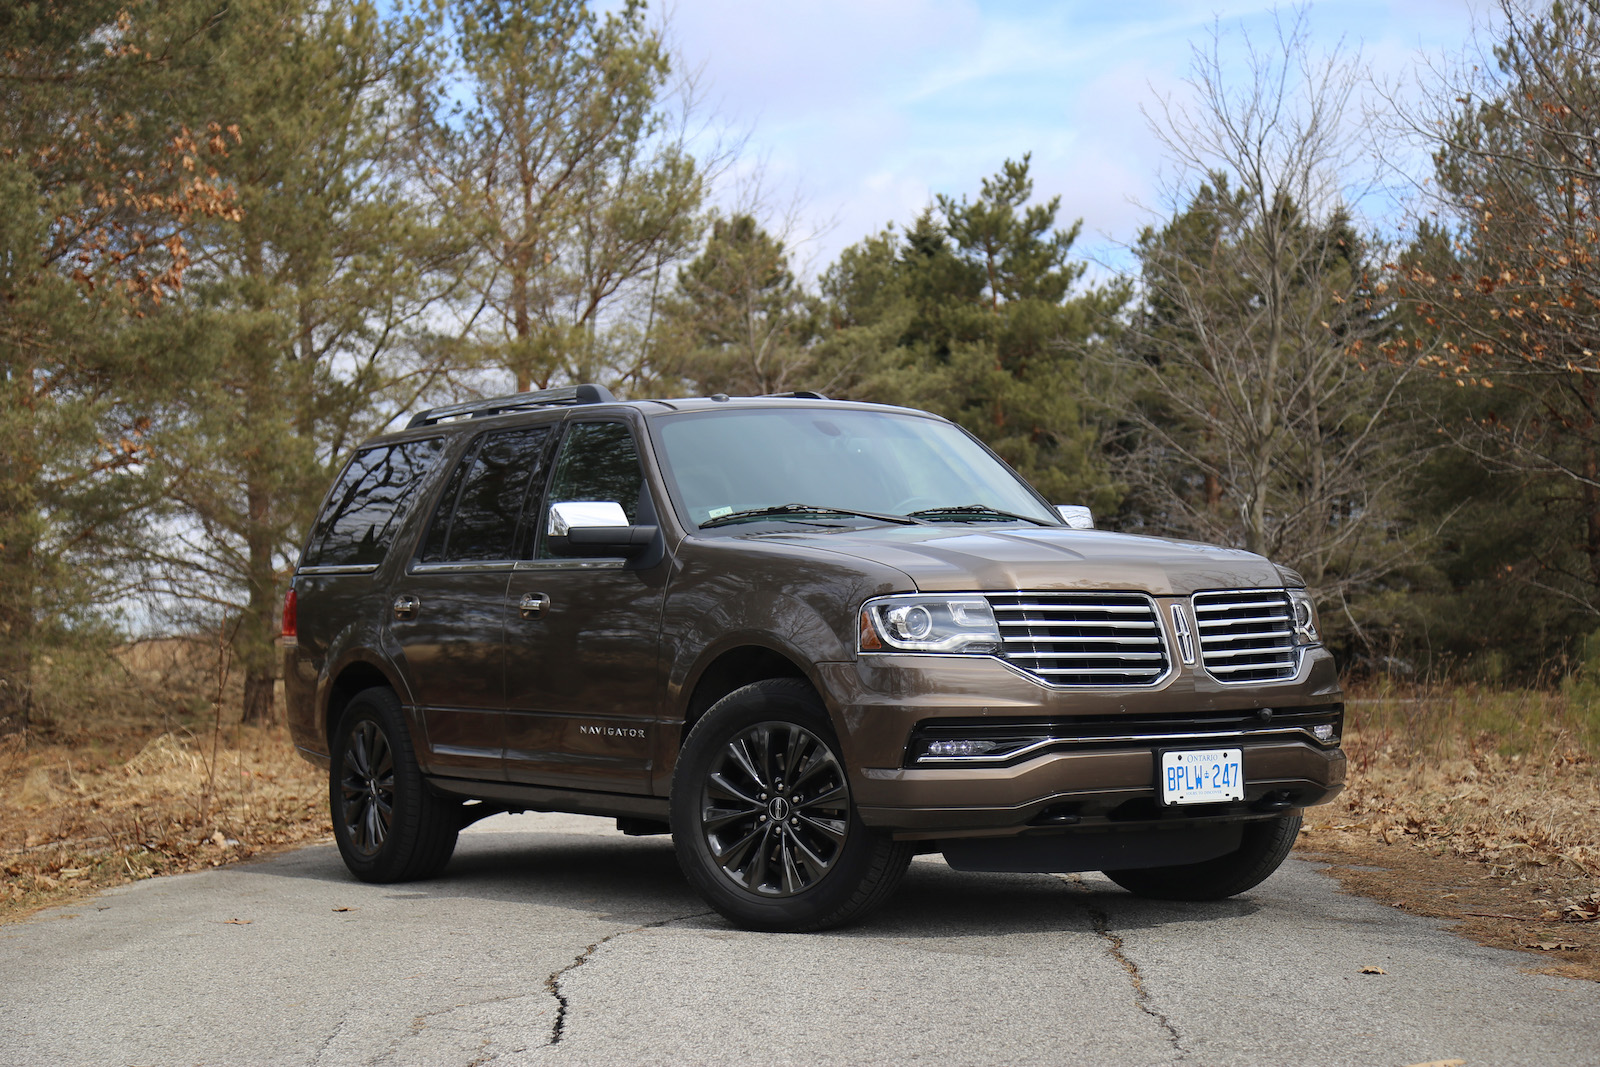 awd sport used inventory cicero utility owned lincoln pre mkx suv